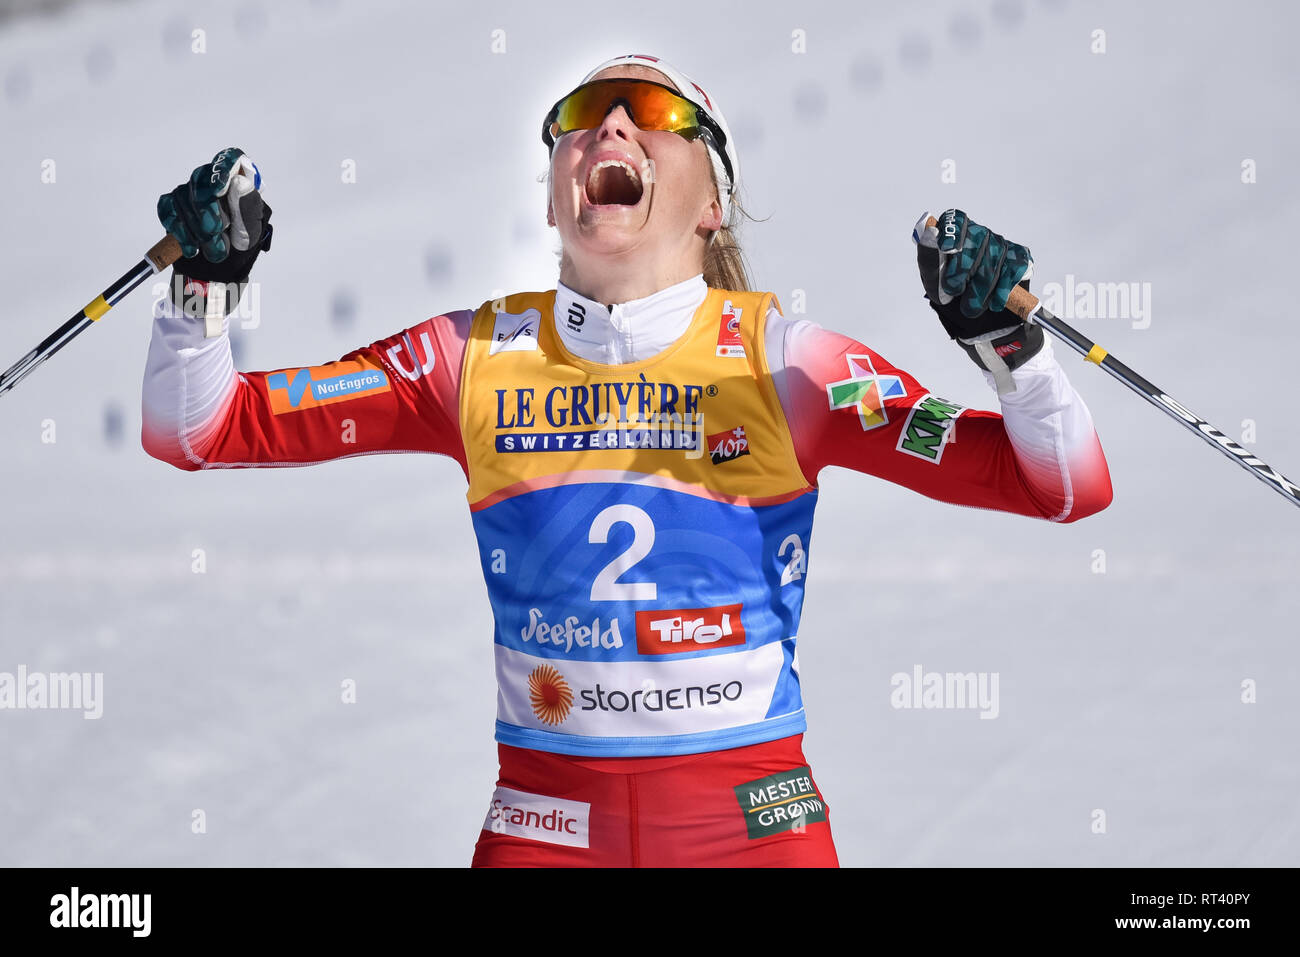 Seefeld, Austria, 23 February, 2019.  Therese Johaug of Norway wins nordic world ski championship skiathlon event. Her first world championship after - Stock Image